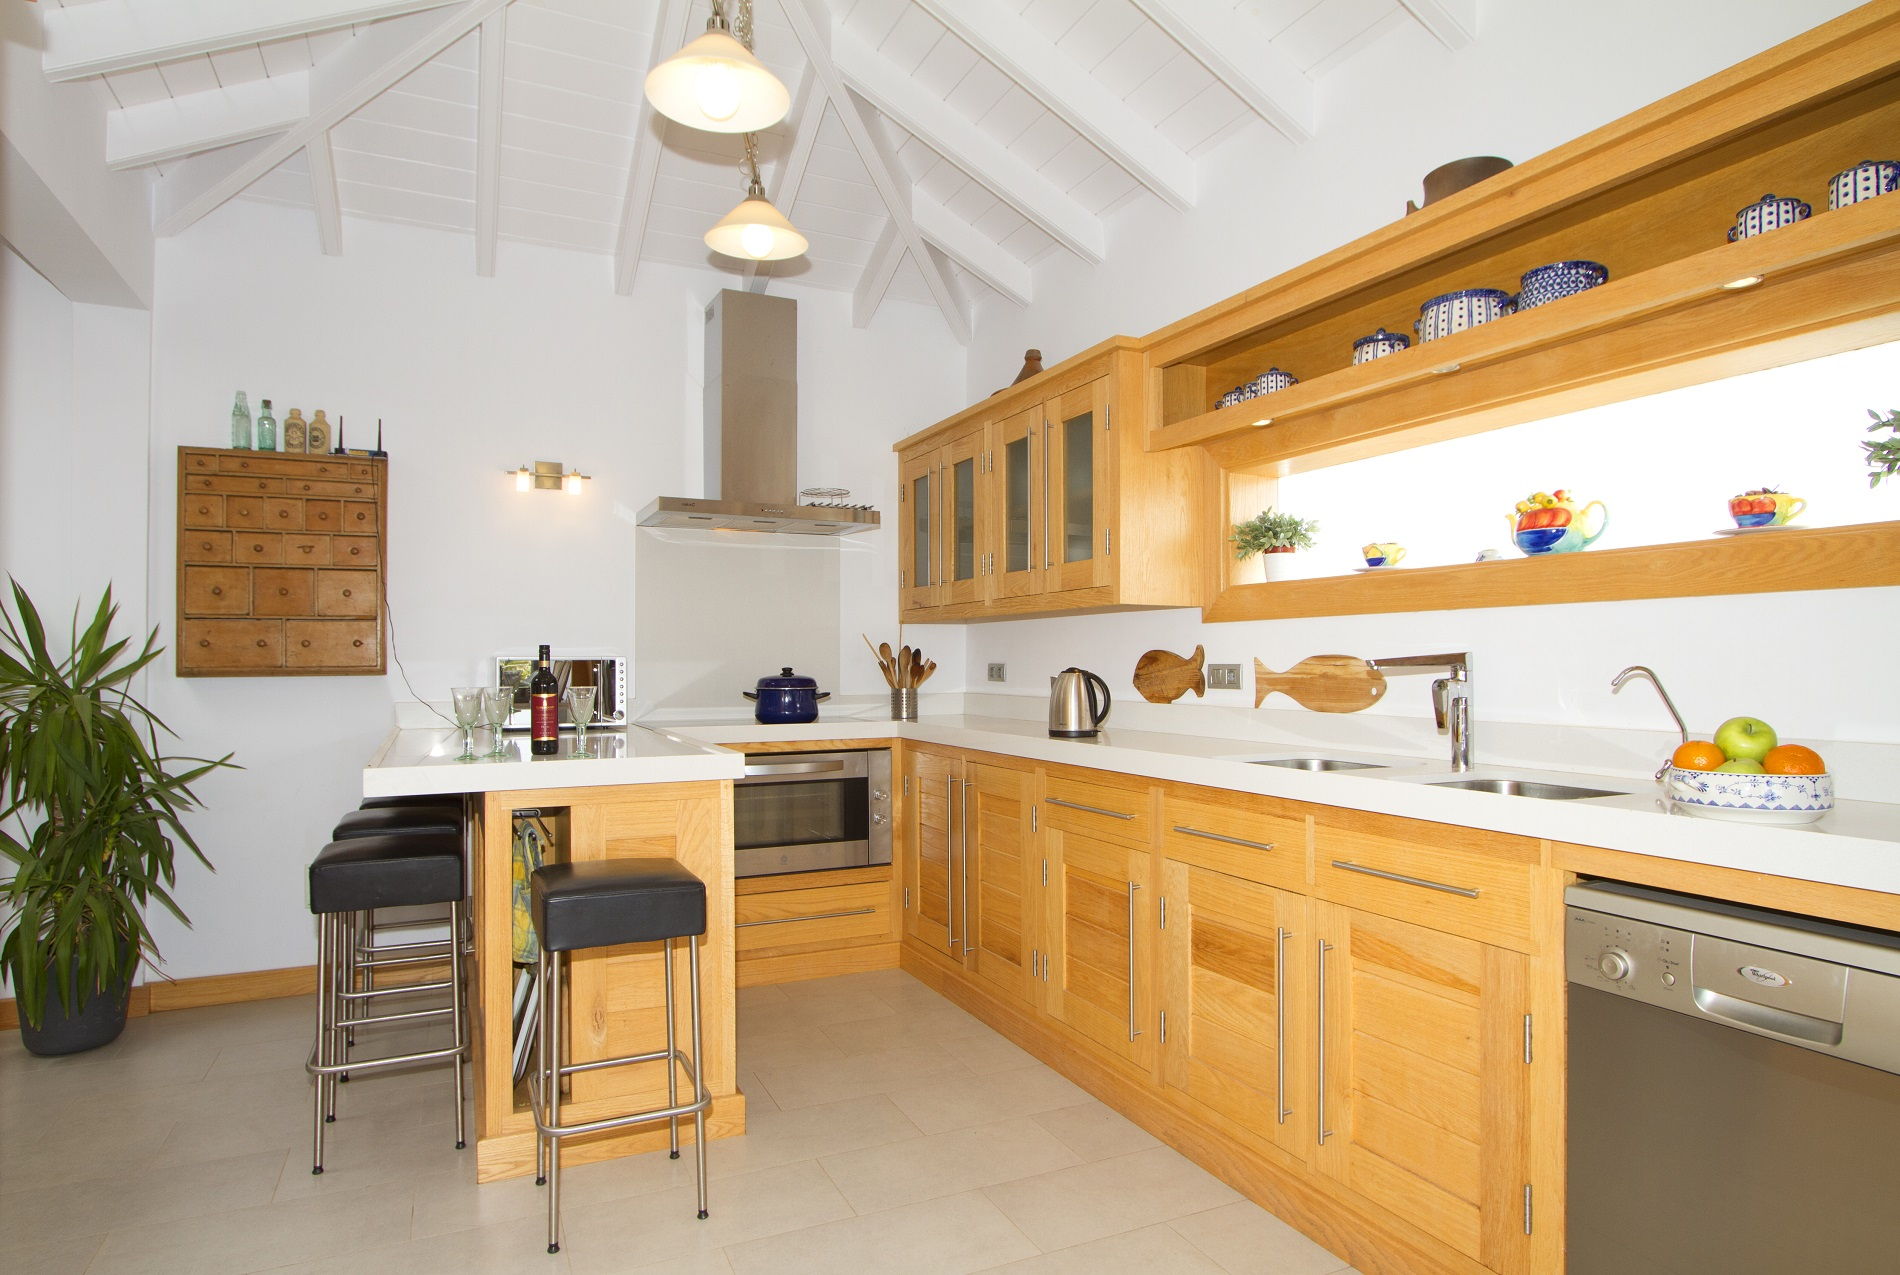 Villa LVC198401 Kitchen with everything you need for self catering